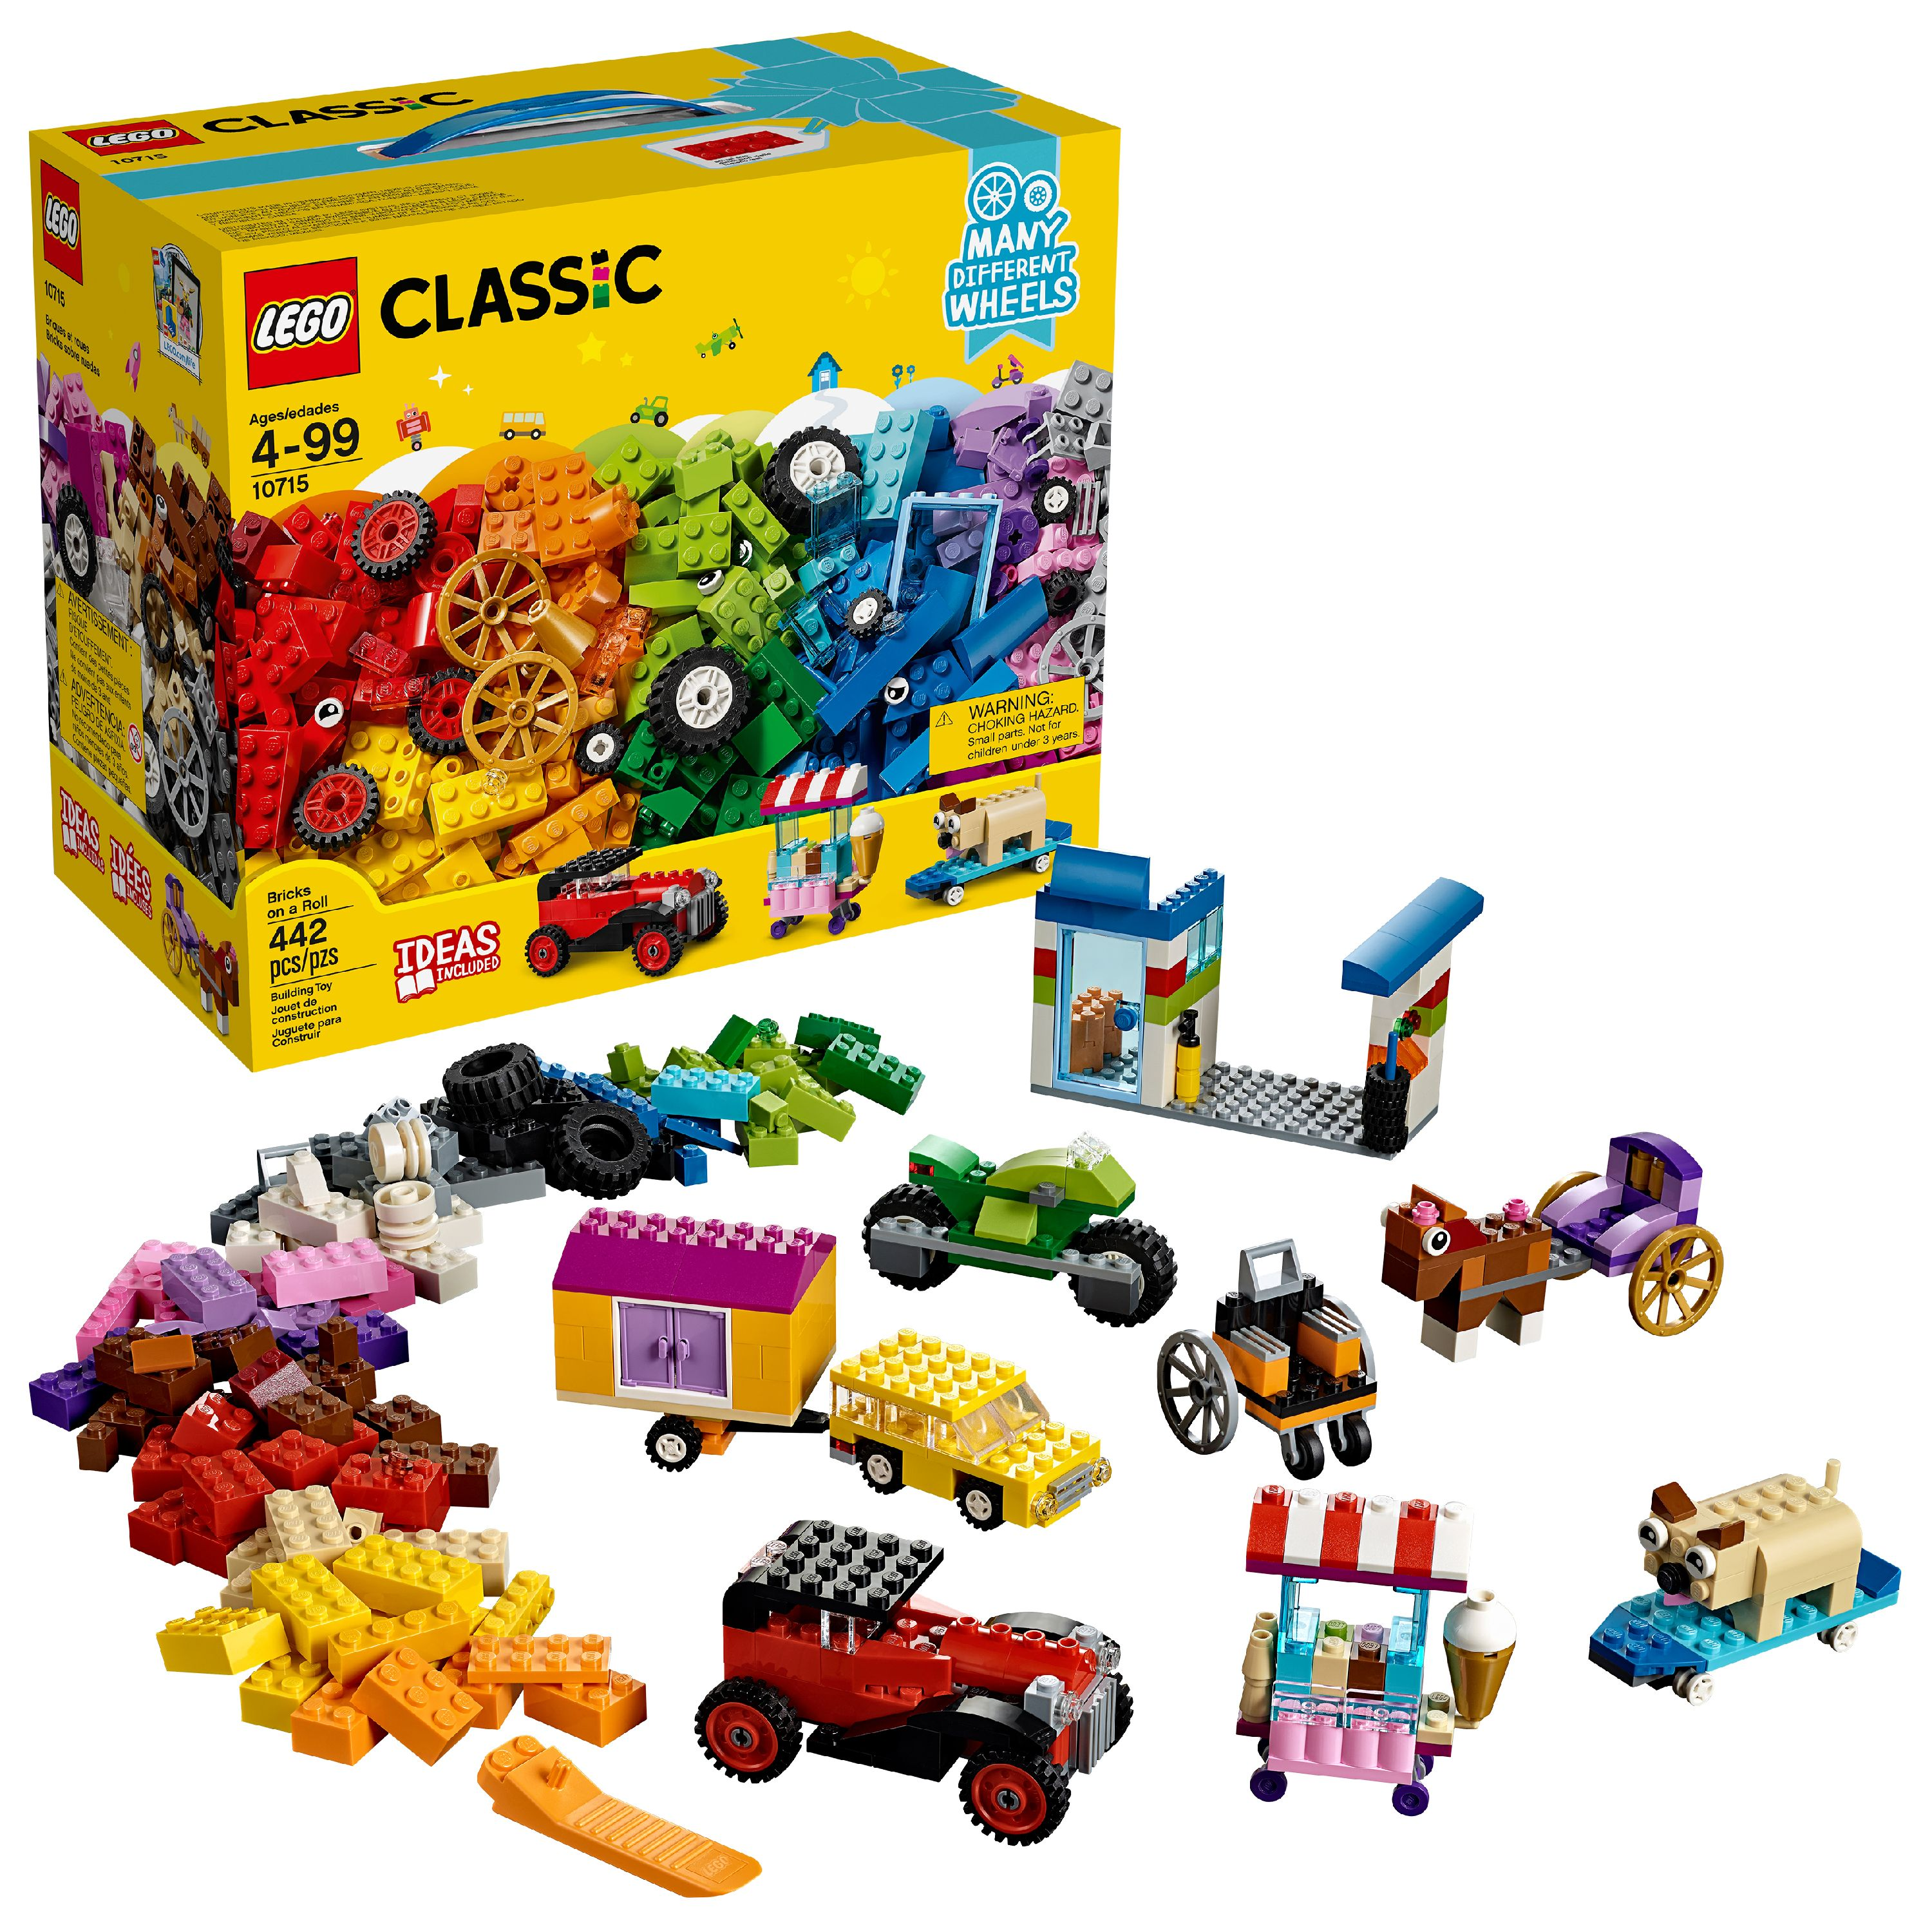 LEGO Classic Bricks on a Roll 10715 Building Kit (442 Pieces)